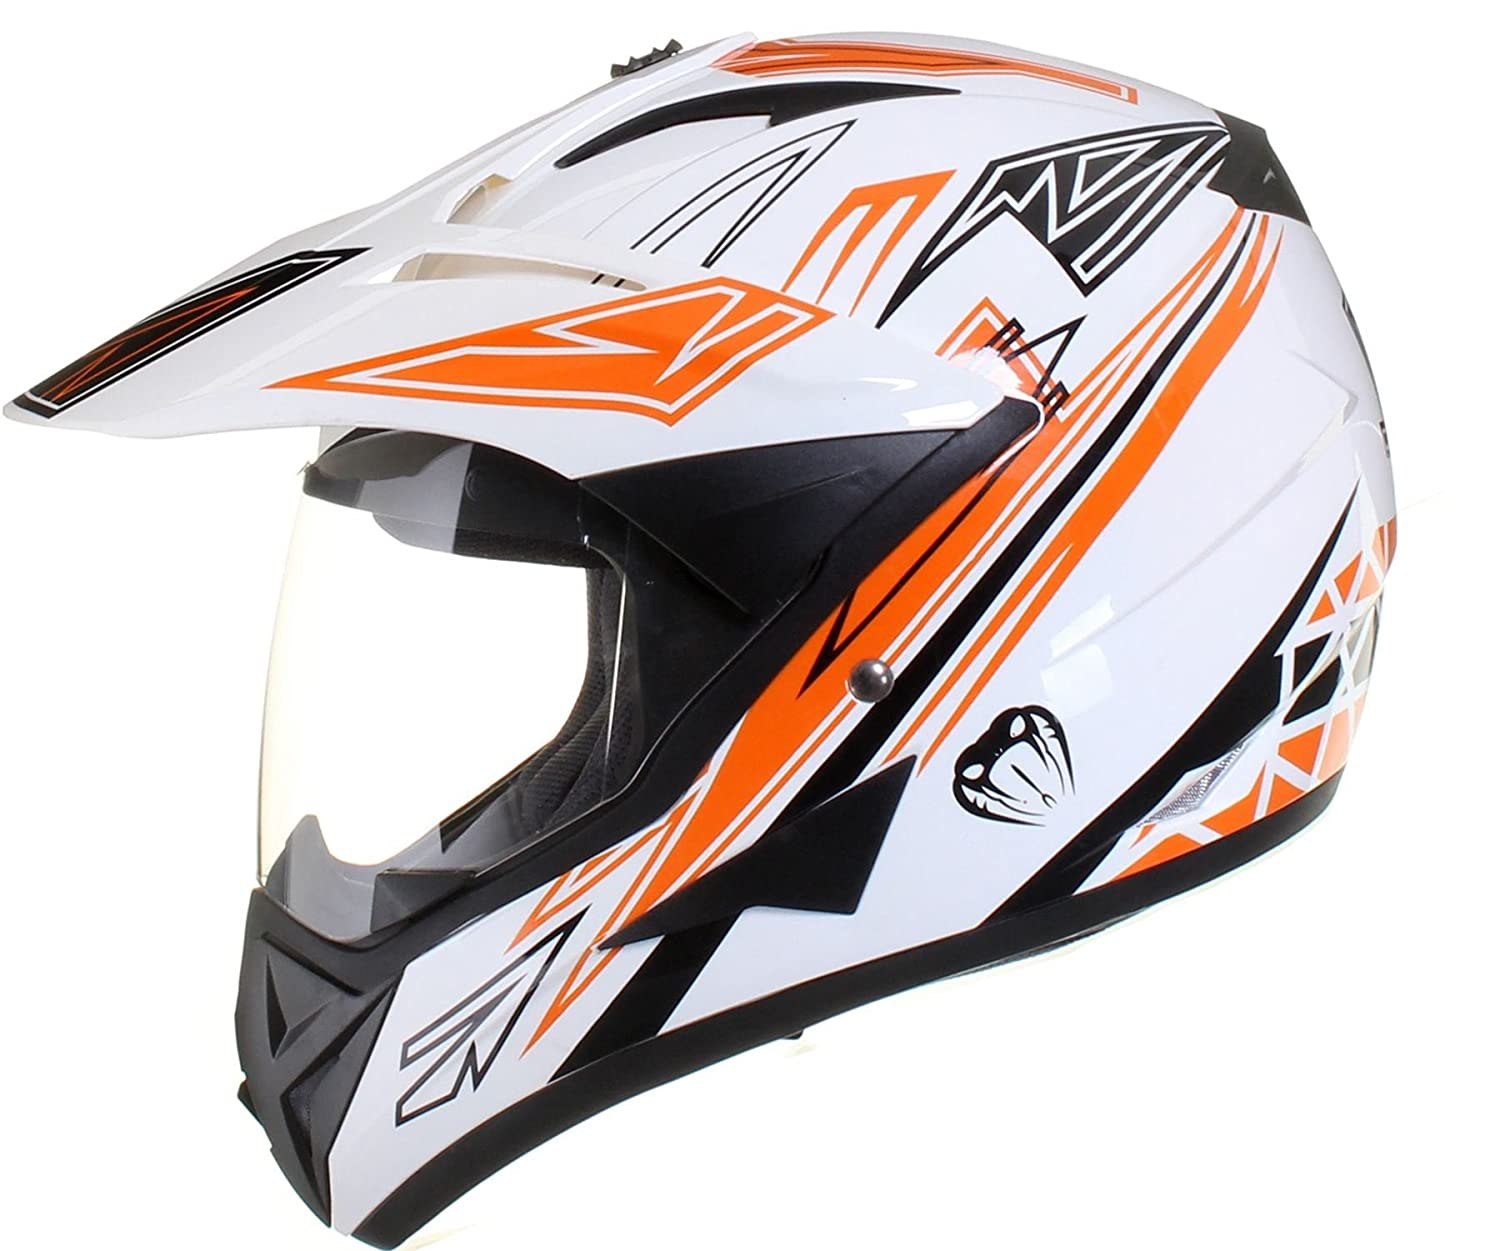 Qtech MX Crash HELMET with Visor for Motocross Motorbike ATV Enduro VIPER in Red, Black & White - MEDIUM 57-58cm